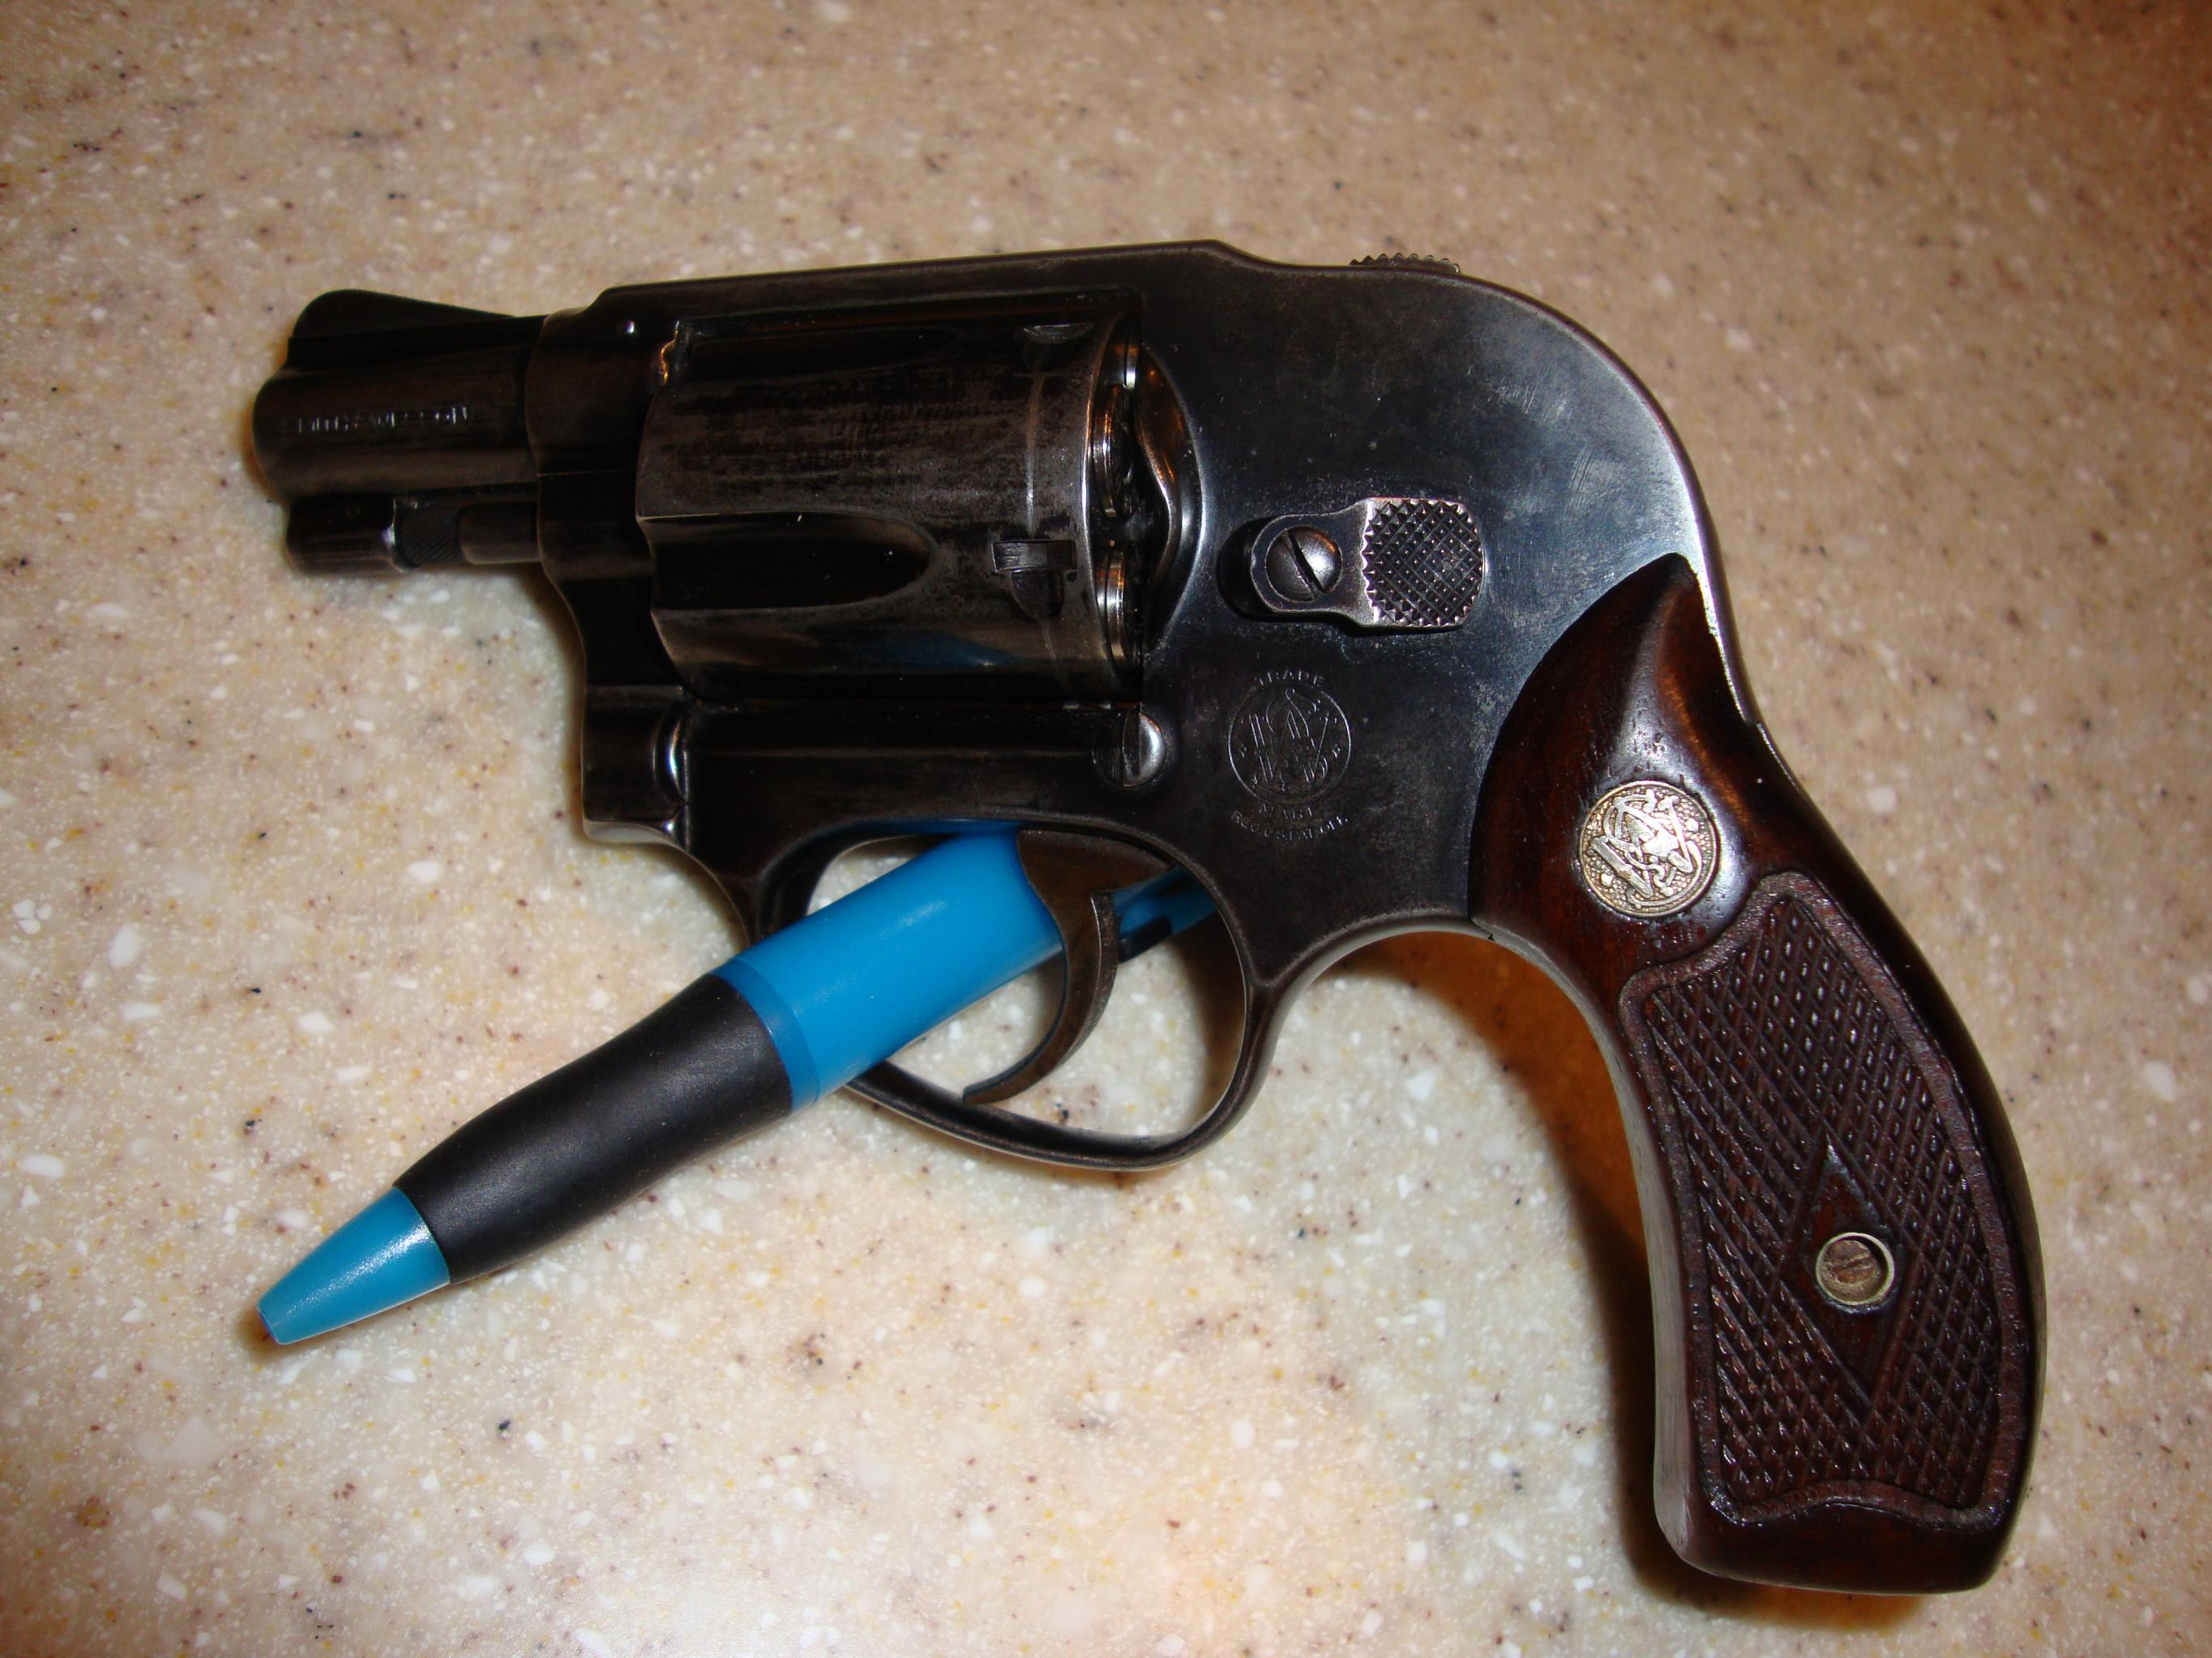 Going complete circle with a new S&W 442 5 shot .38 revolver-dsc00607.jpg